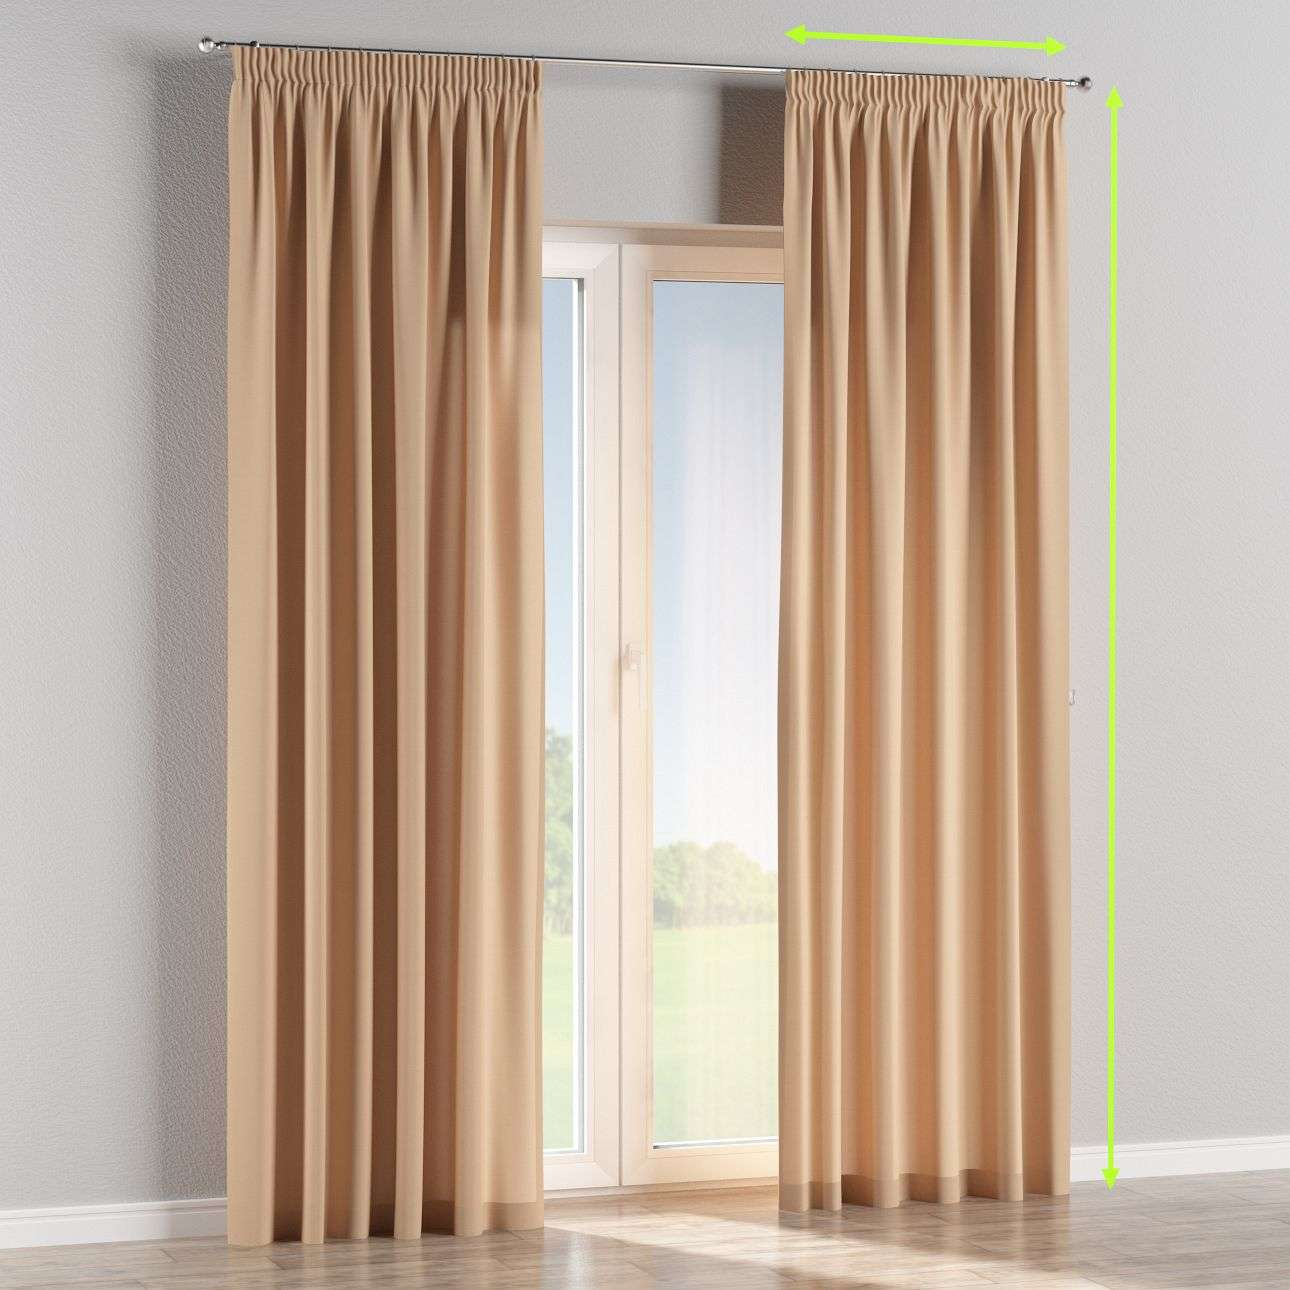 Pencil pleat curtains in collection Cotton Panama, fabric: 702-01